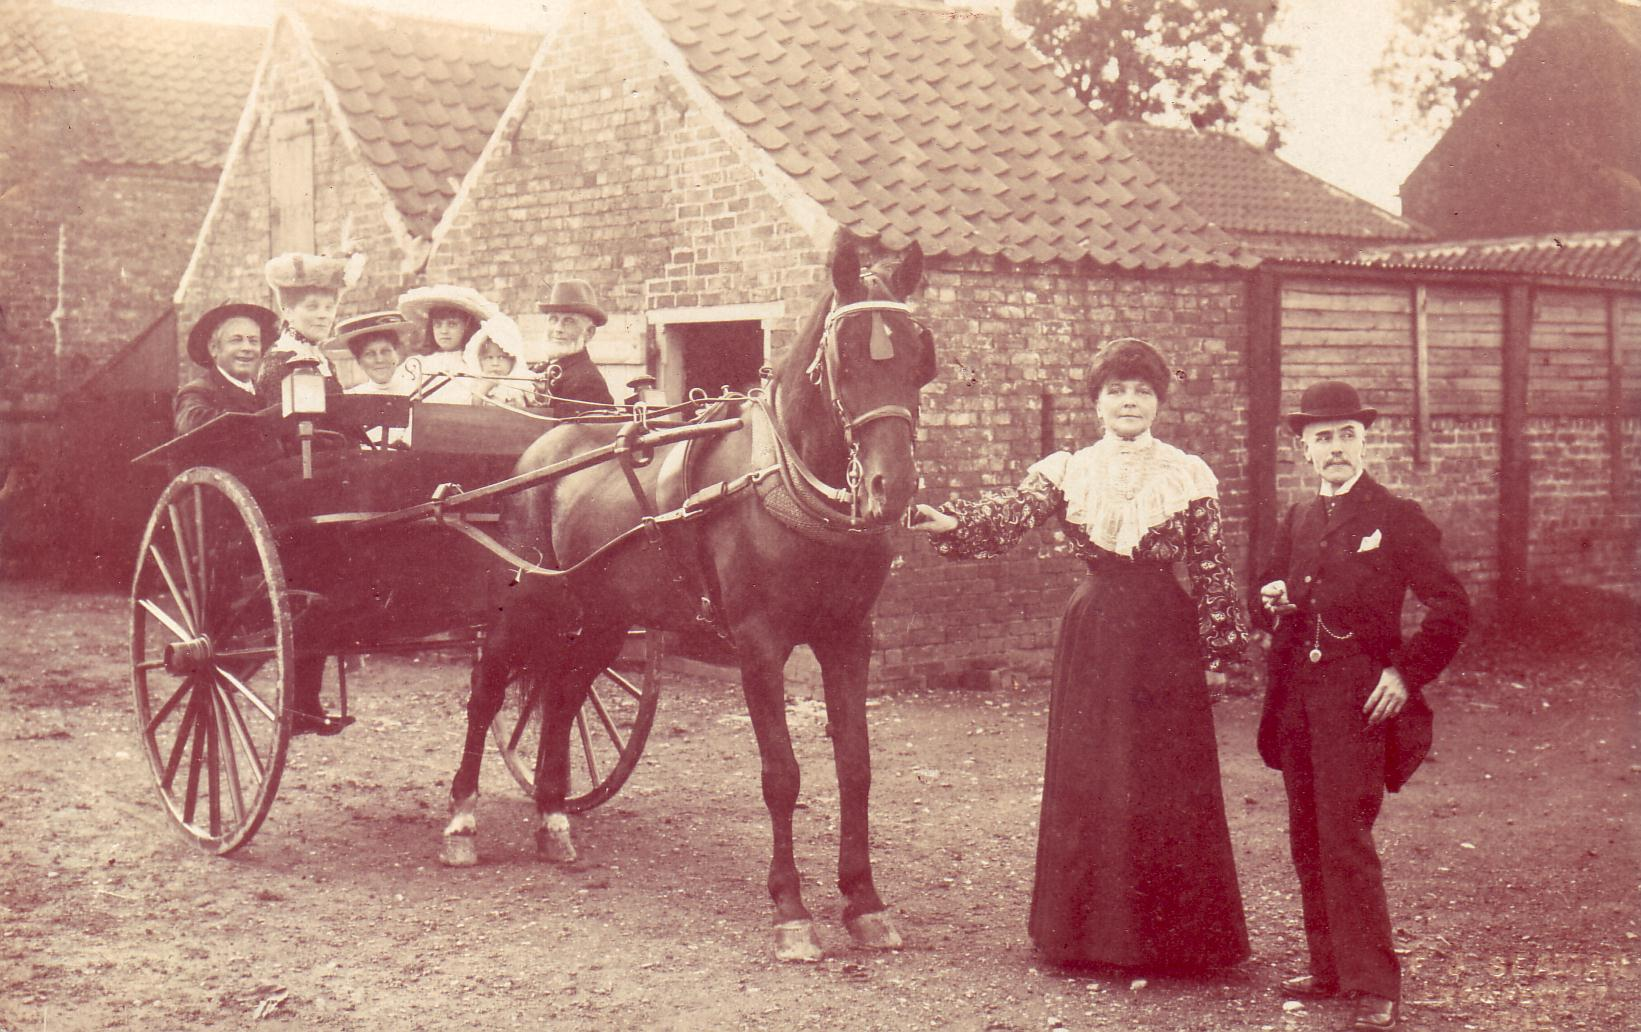 In buggy: unknown, Jemima Pickering, Edith Pickering, Renee Kellington, unknown, unknown. Standing: Ann Pickering, Charles Kellington. Sproatley c1900